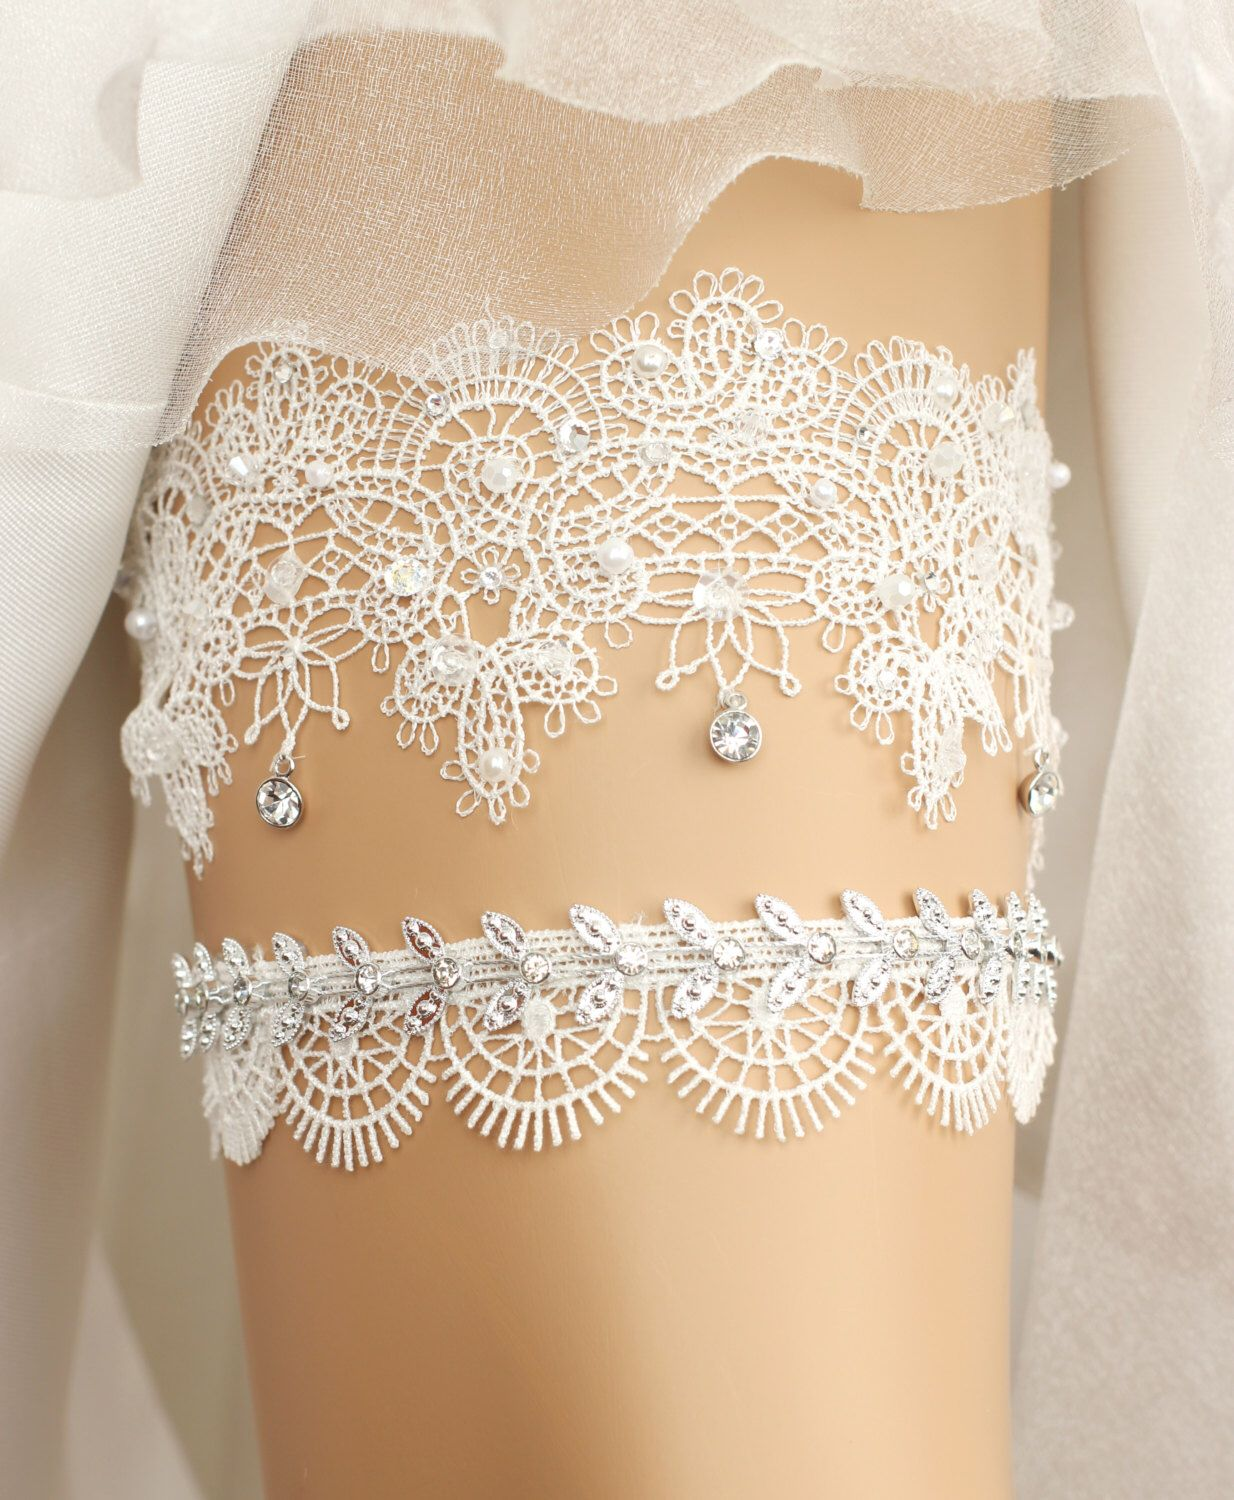 This Piece Would Be Perfect For A Bridal Boudoir Session.